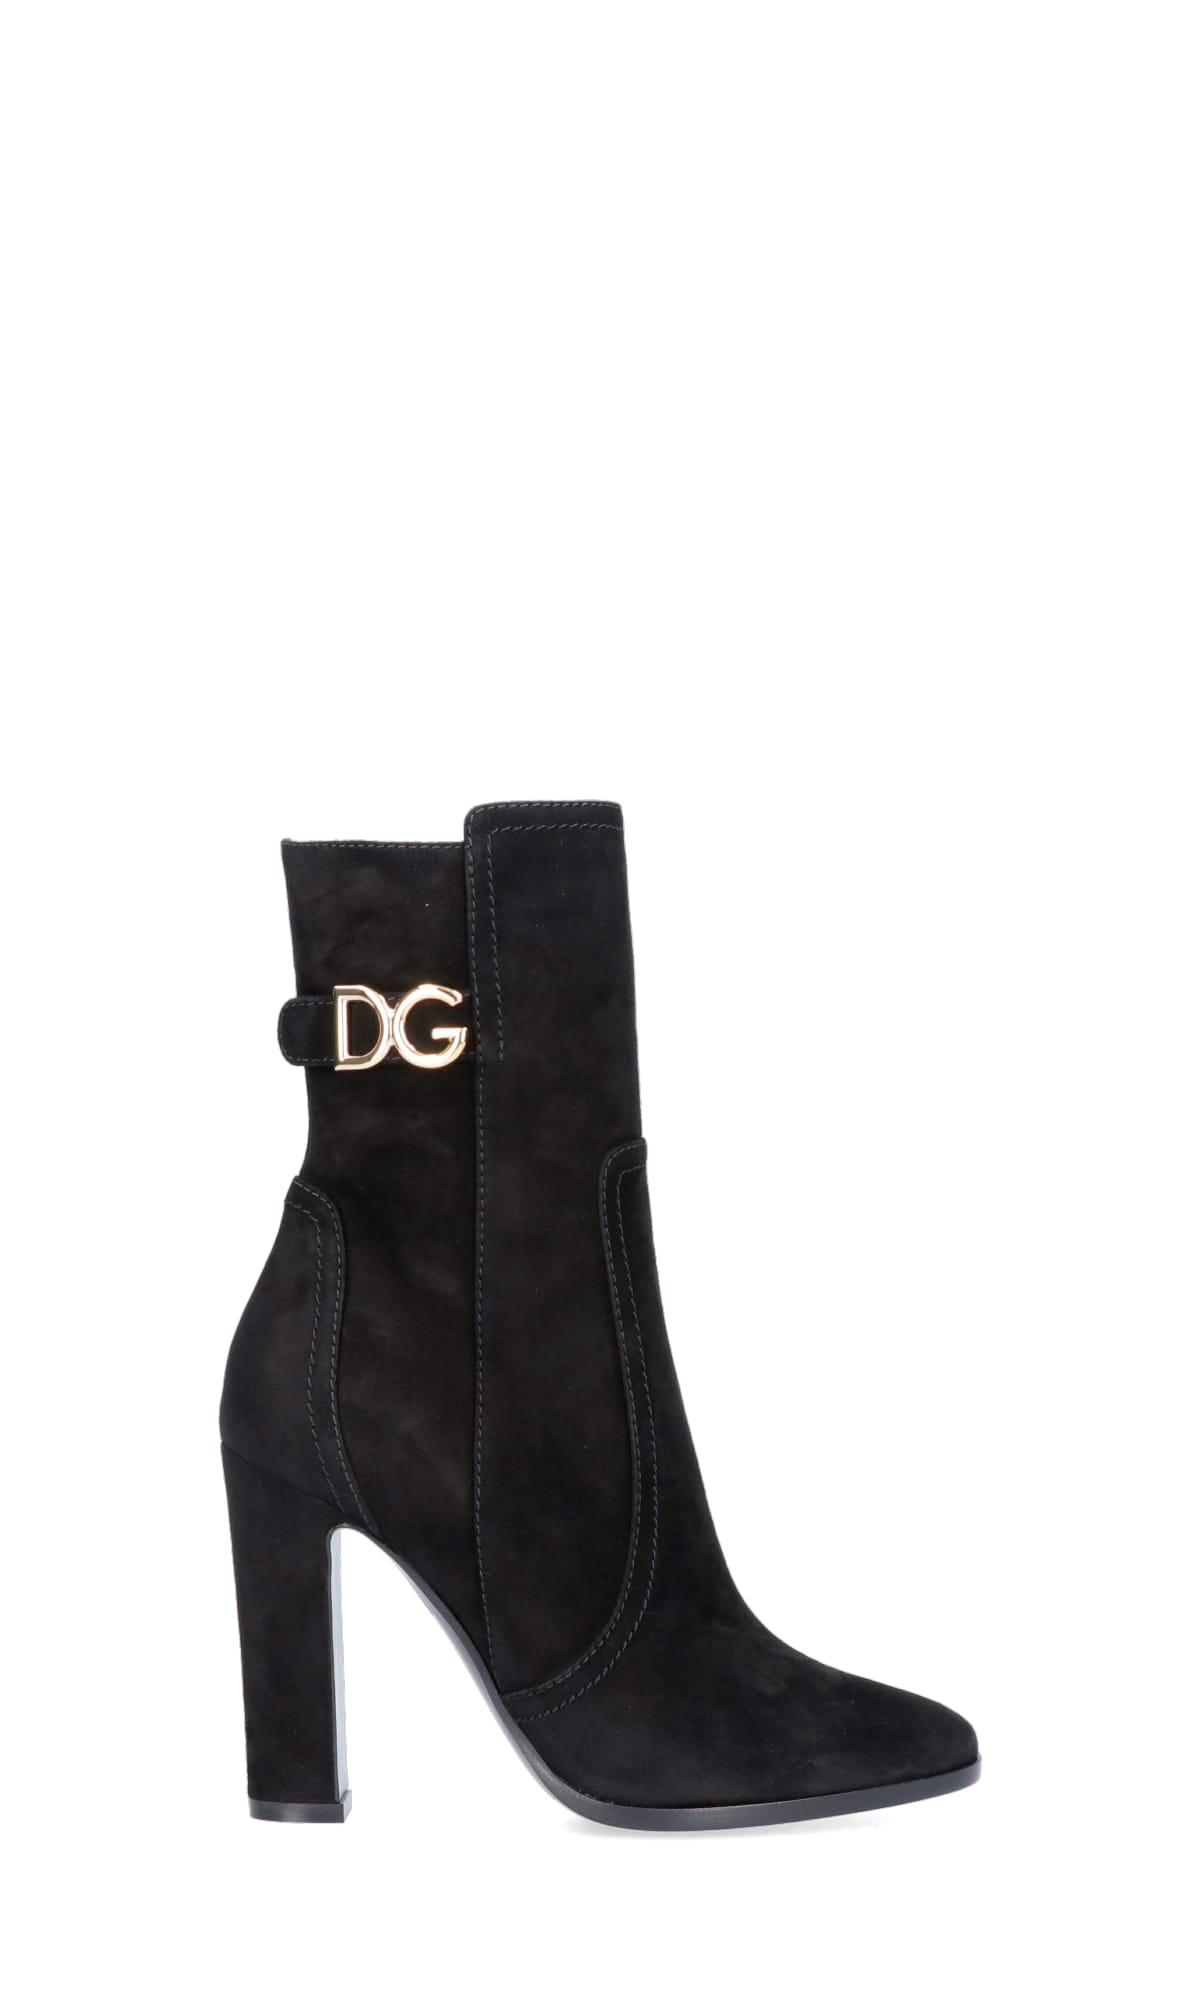 Buy Dolce & Gabbana Boots online, shop Dolce & Gabbana shoes with free shipping